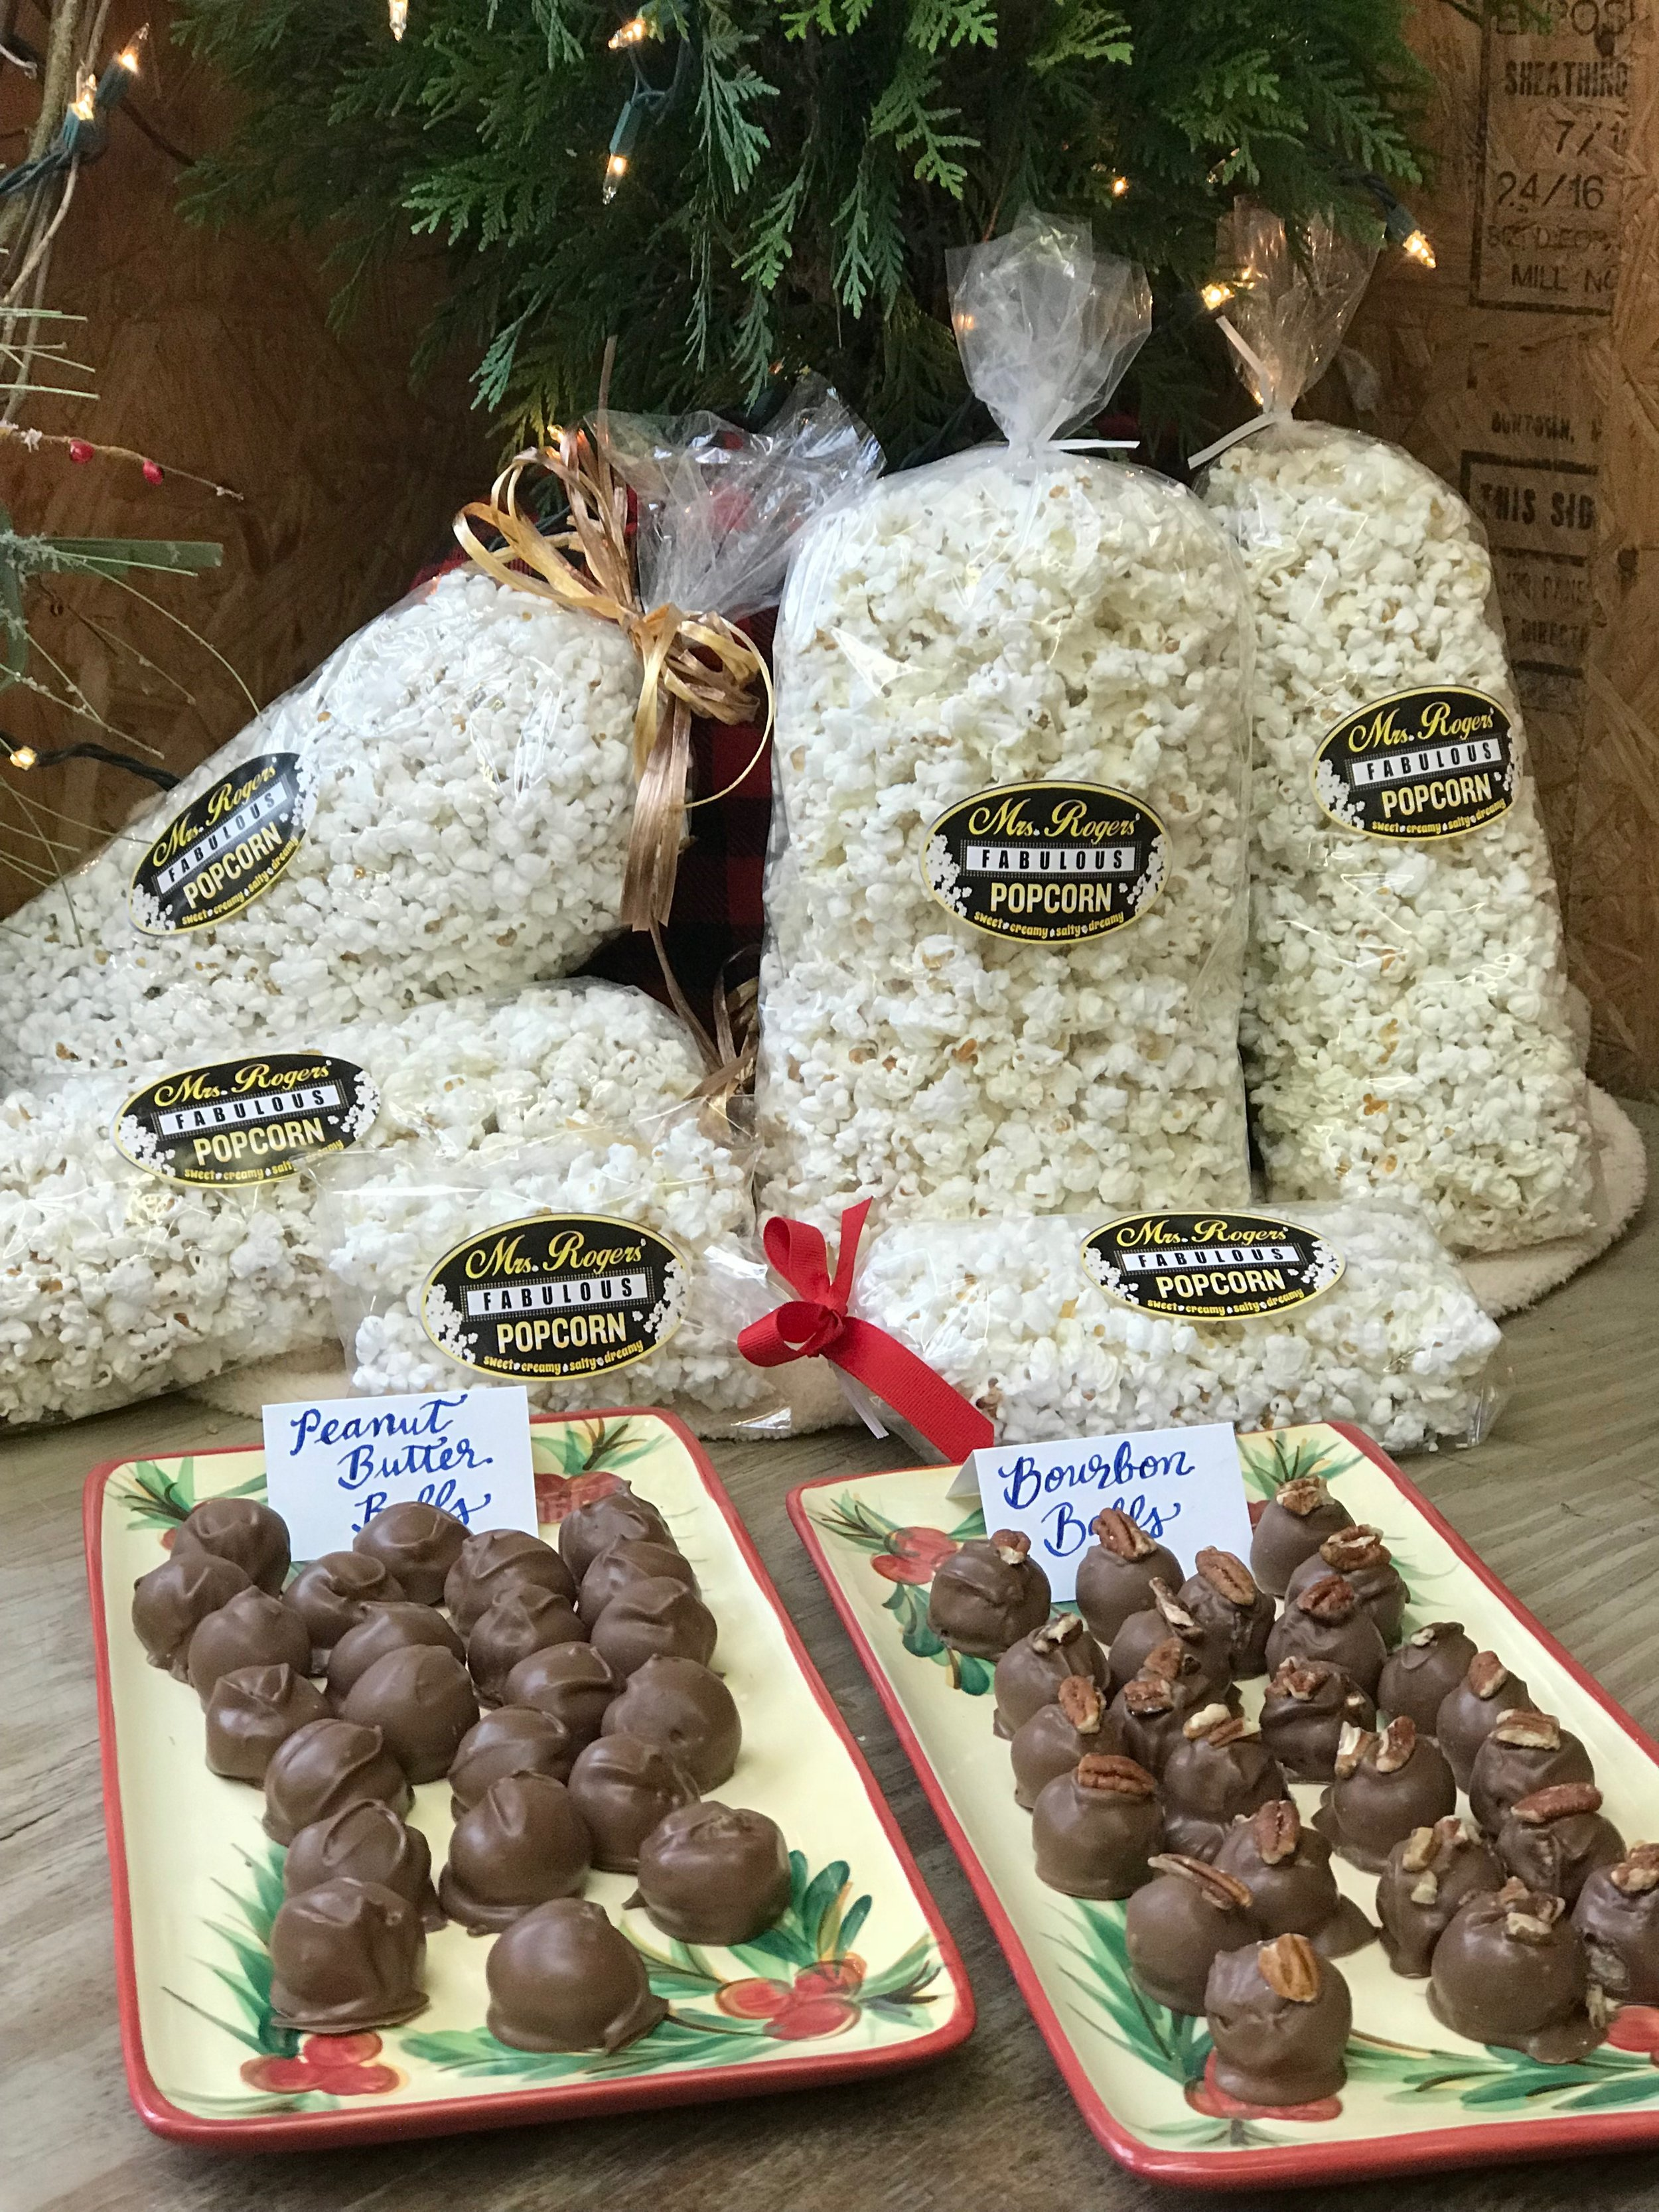 Popcorn and goodies by Mrs. Roger's Fabulous Favorites! @MrsRogersFabulousFavorites  www.mrsrogerspopcorn.com